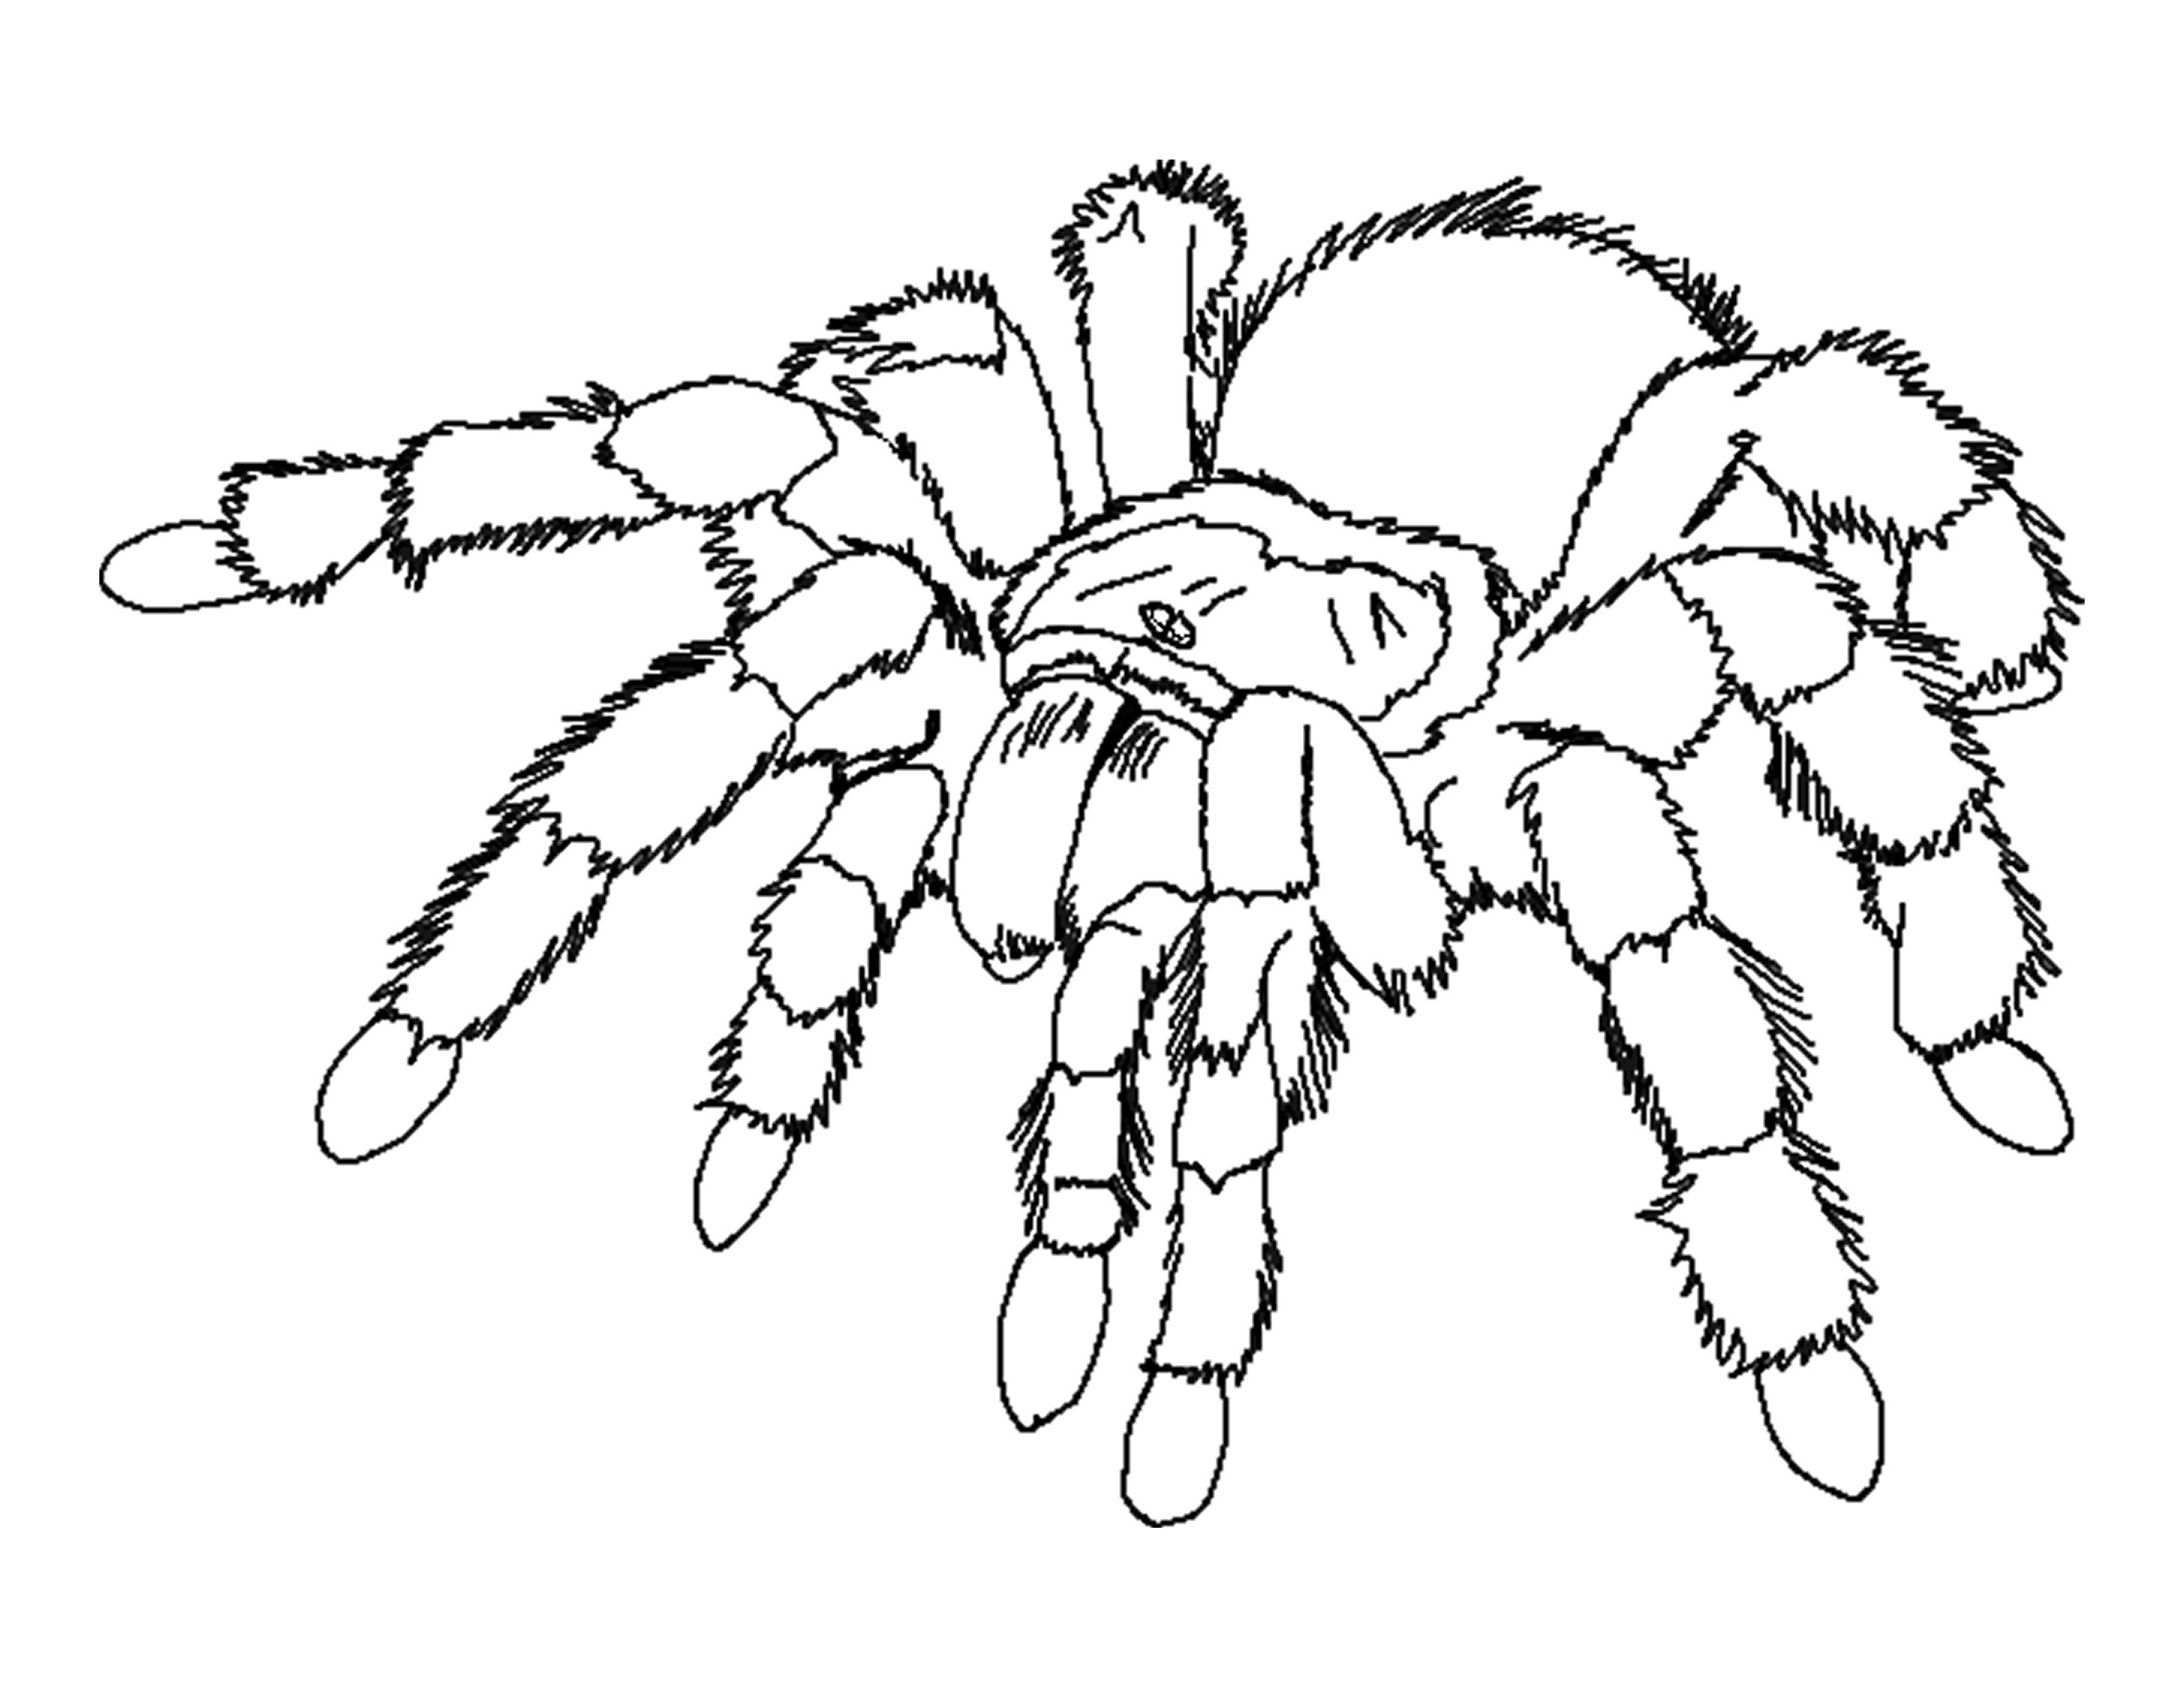 spider coloring book spider coloring pages to download and print for free book spider coloring